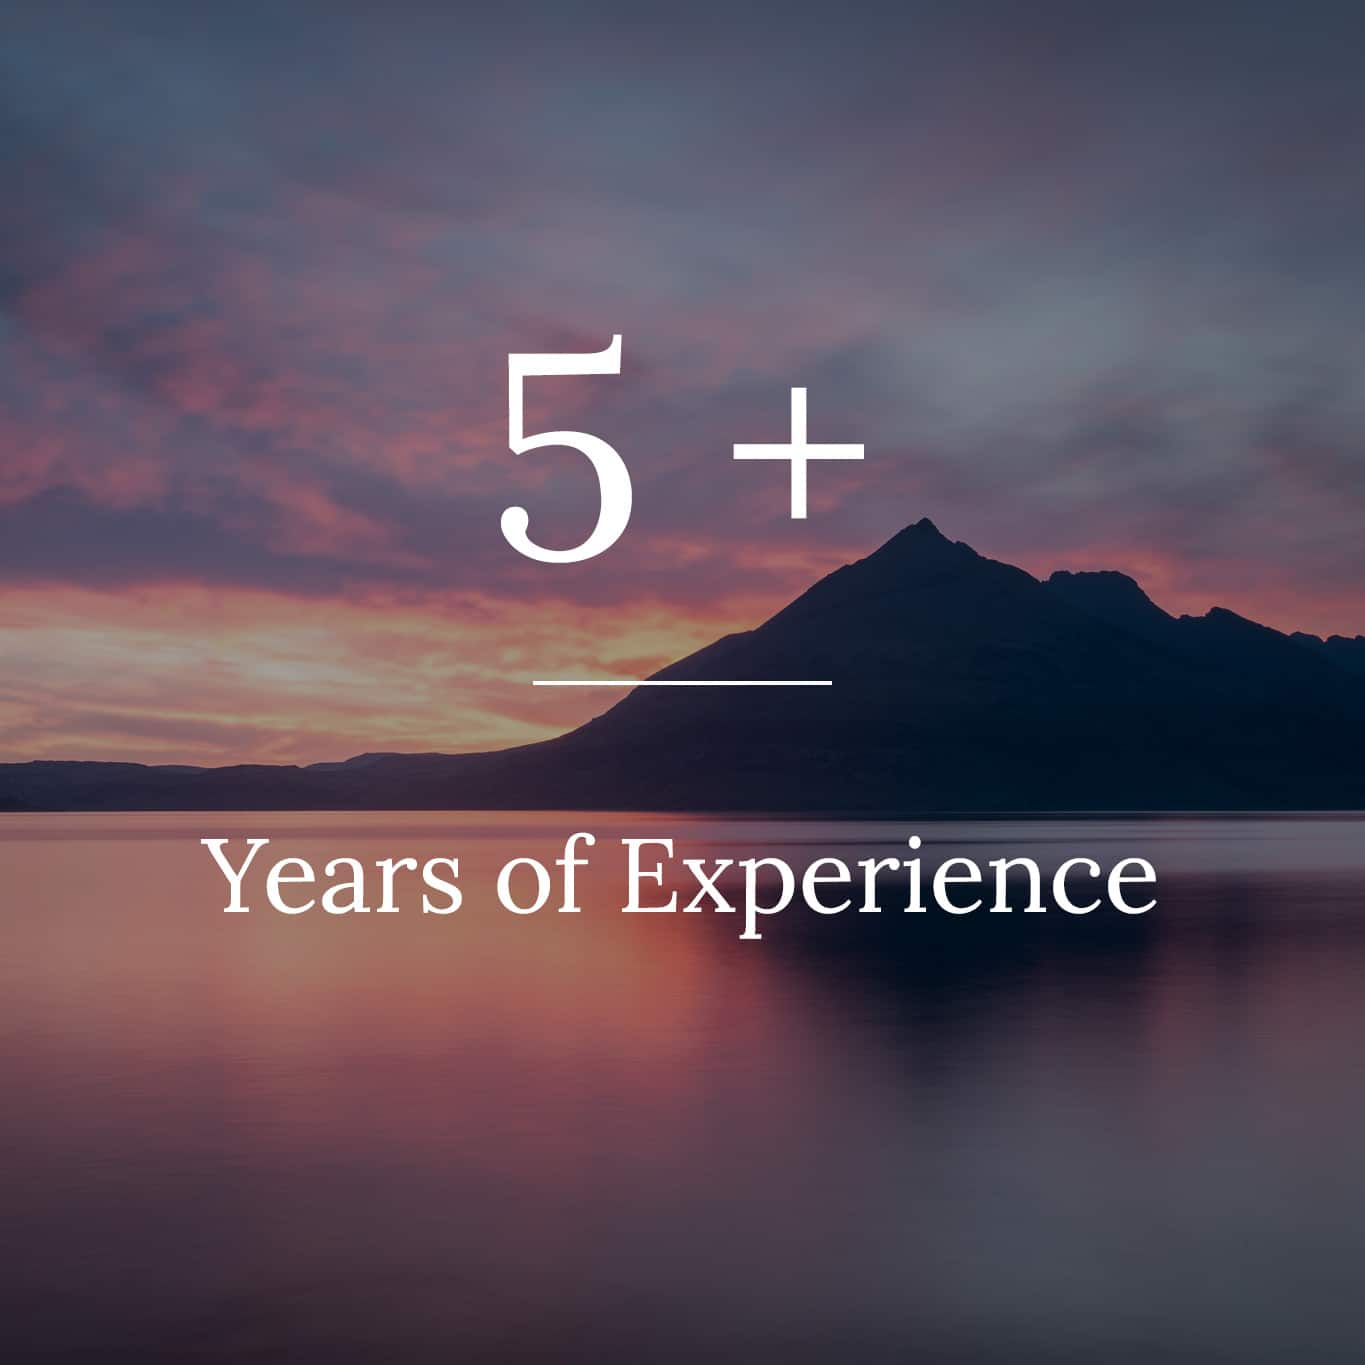 About us experience